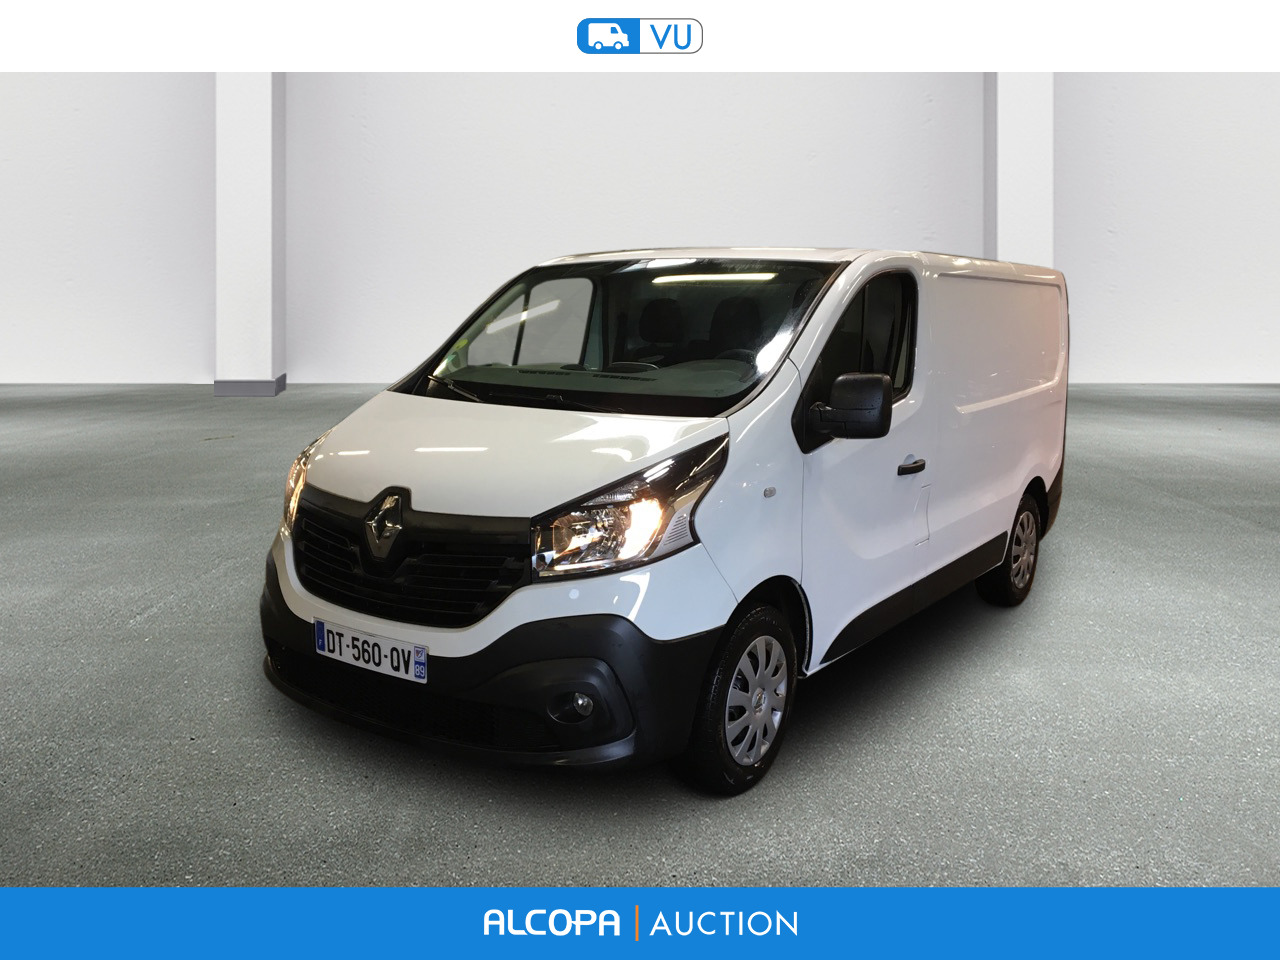 renault trafic trafic fg l1h1 1200 dci 90 grand confort alcopa auction. Black Bedroom Furniture Sets. Home Design Ideas